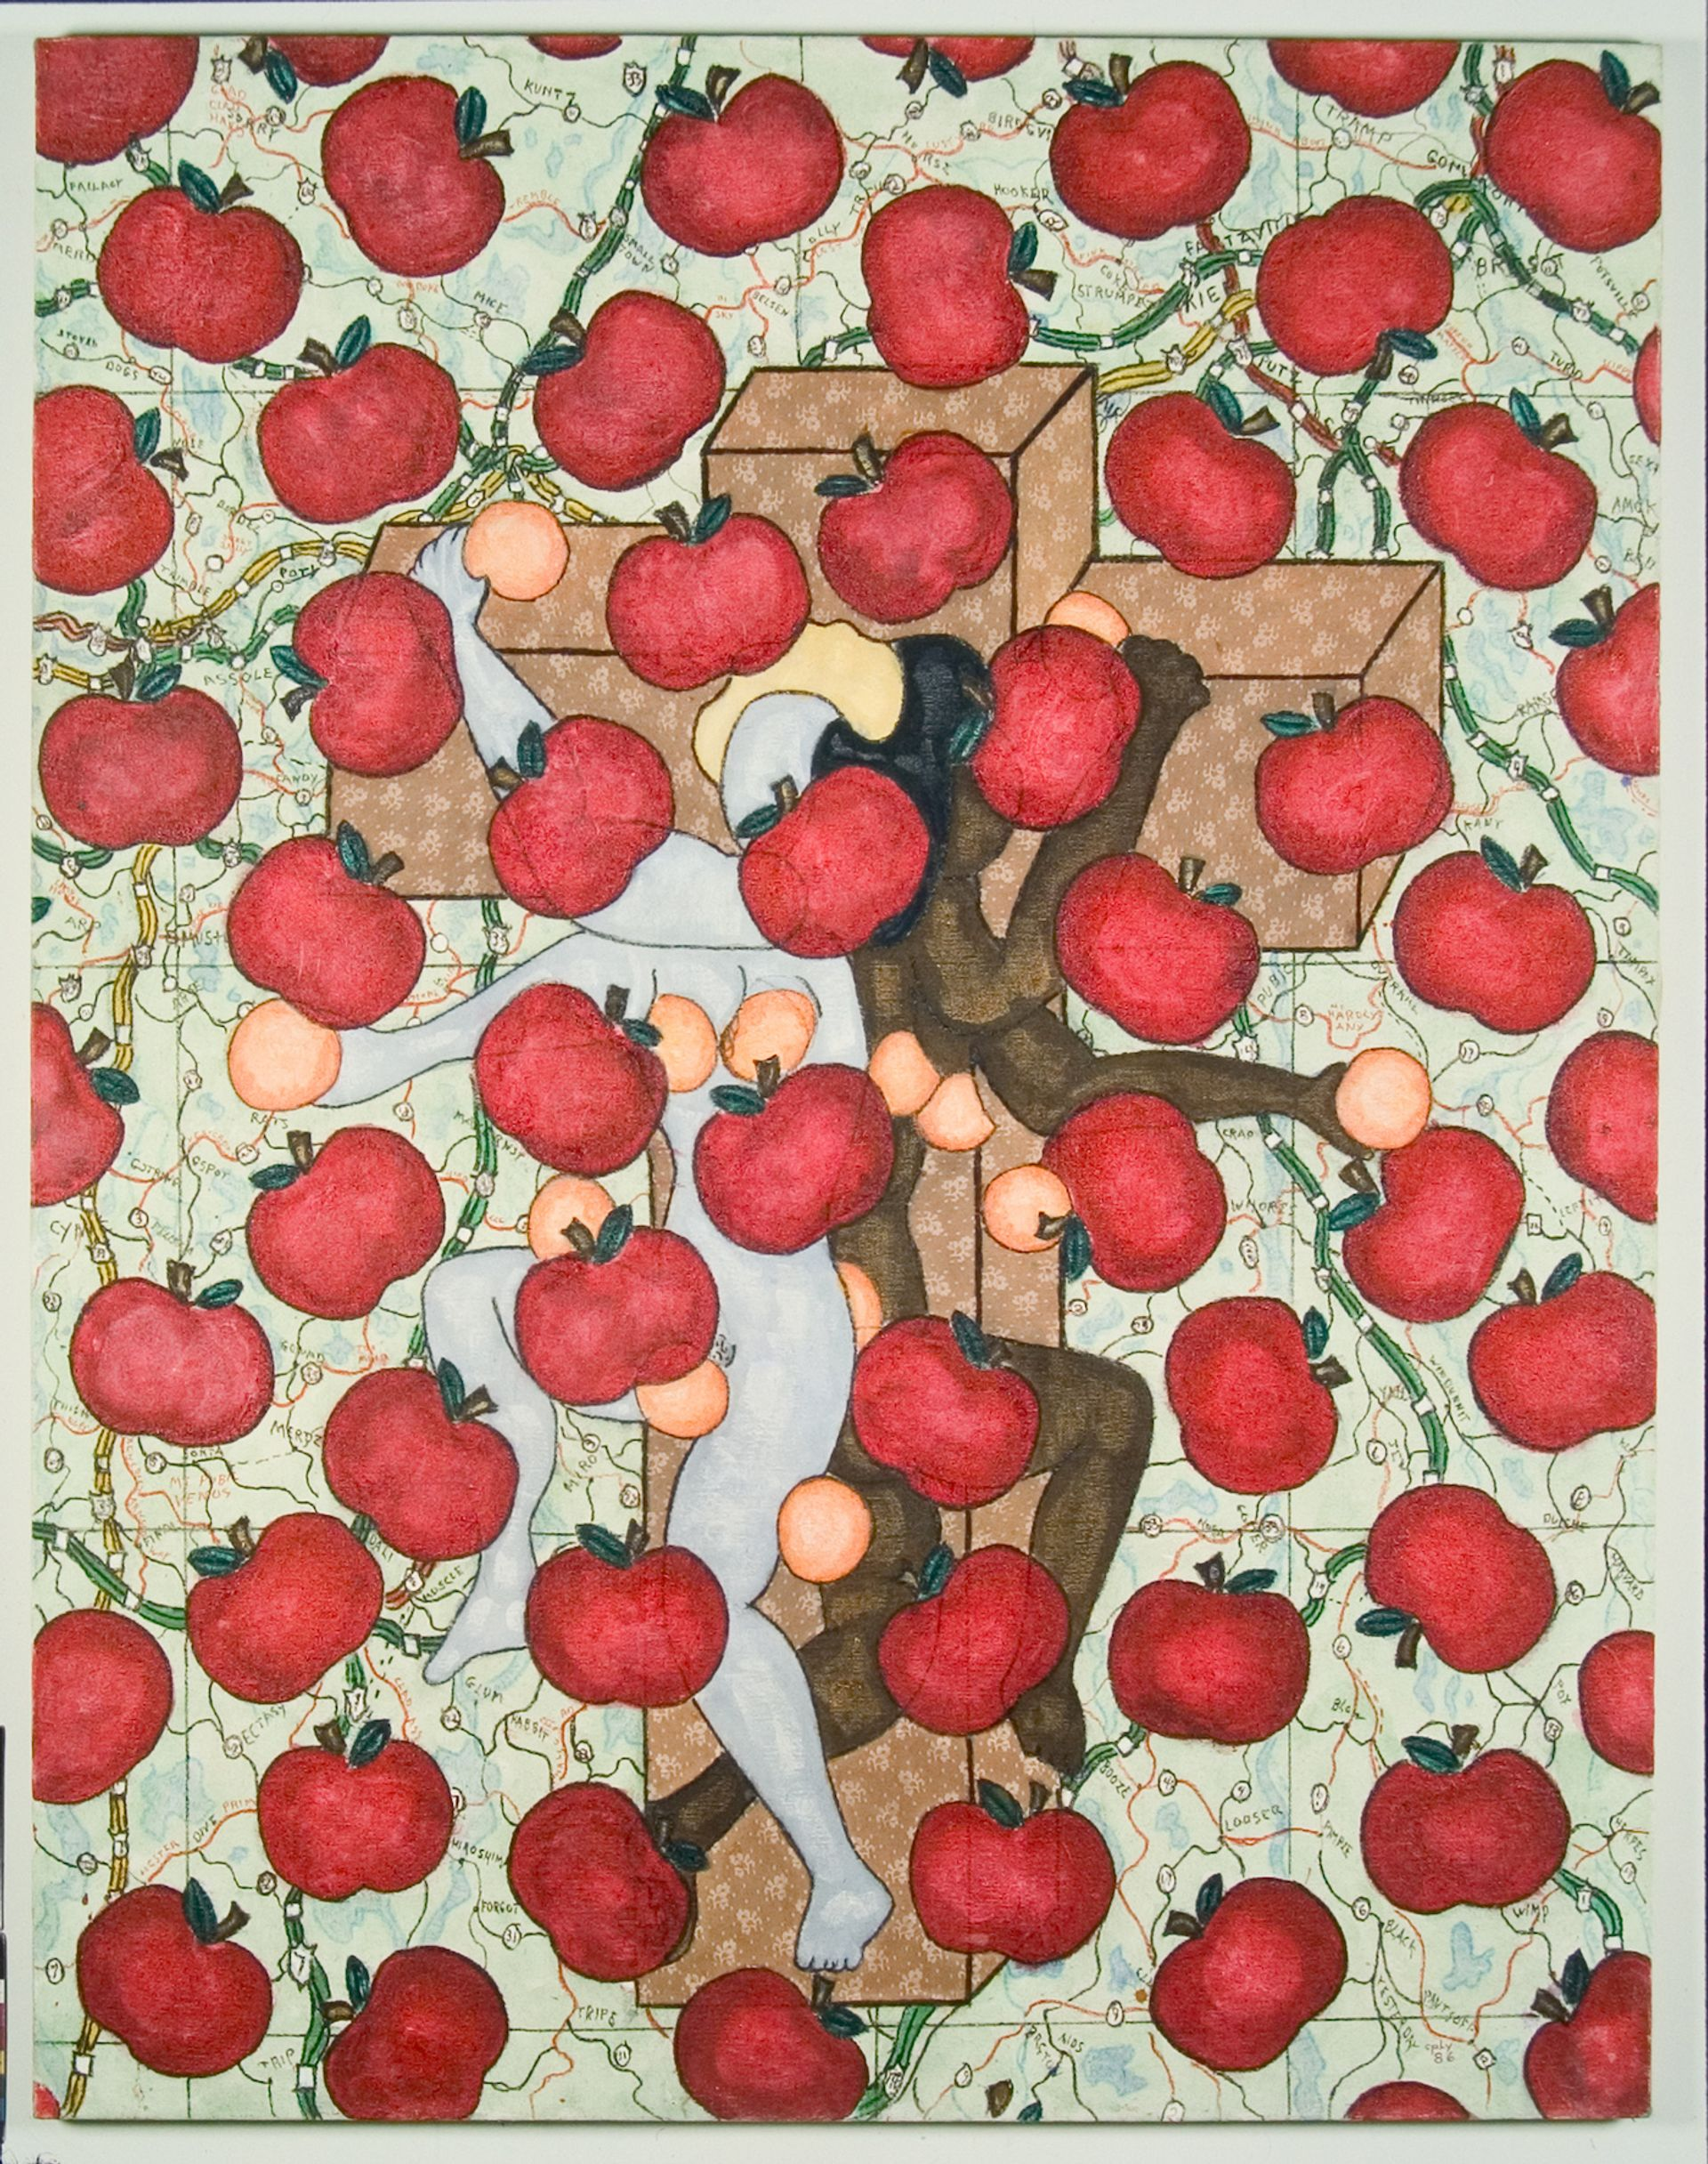 William N. Copley, Untitled (Apples & Oranges) (1986) © 2020 William N. Copley Estate / Artists Rights Society (ARS), New York. Courtesy of Kasmin Gallery